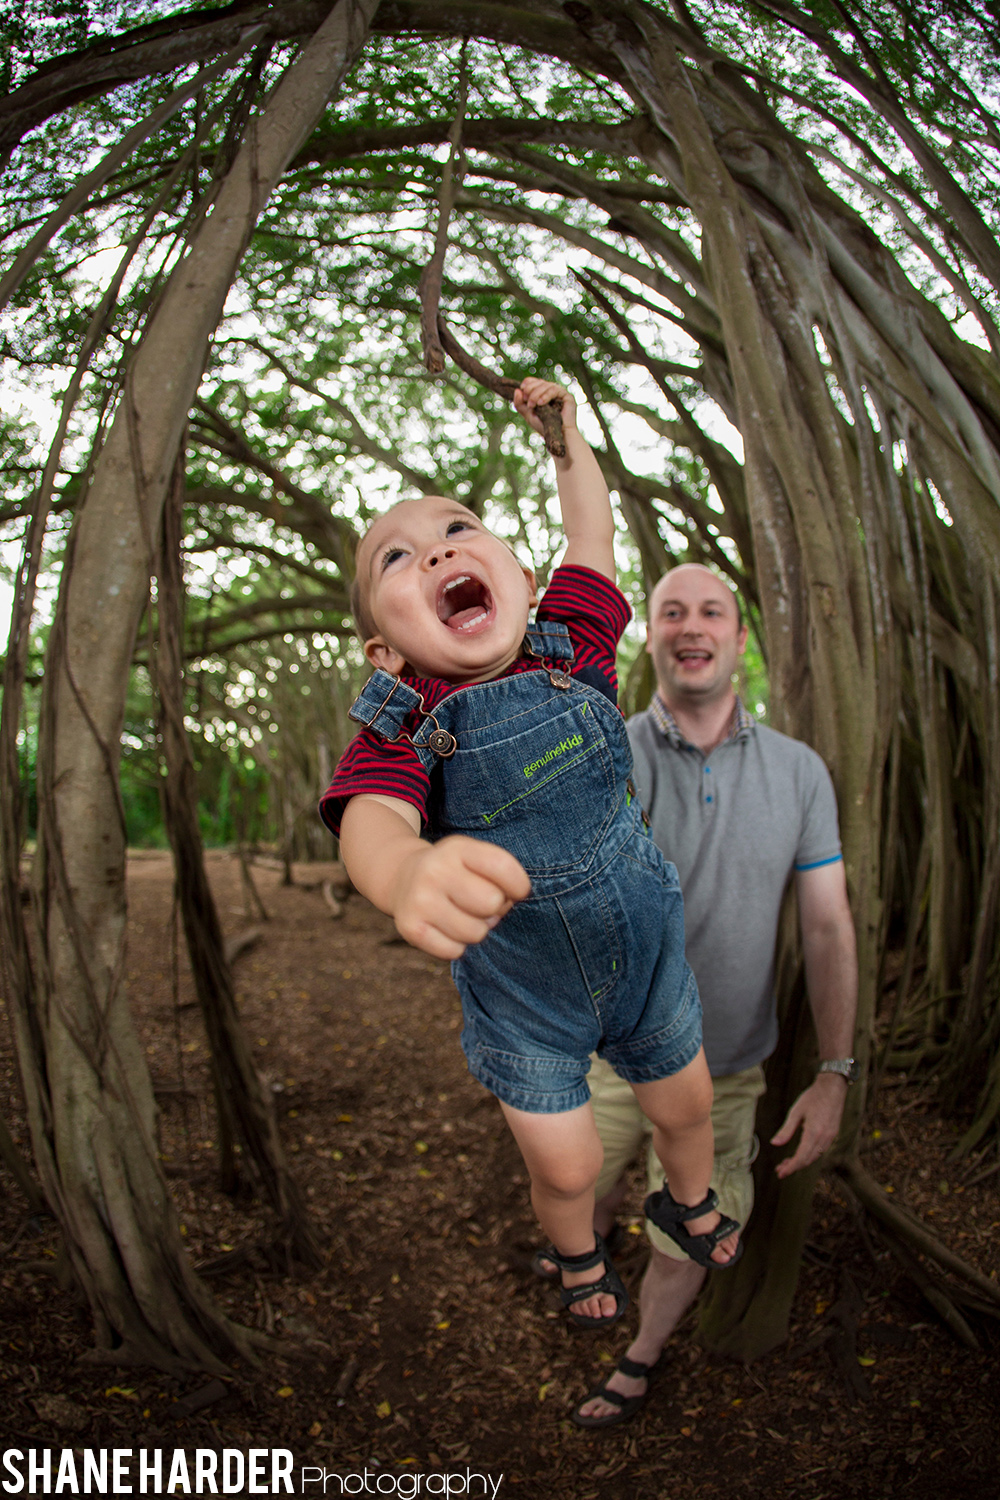 Best Kid photo with shane harder photography